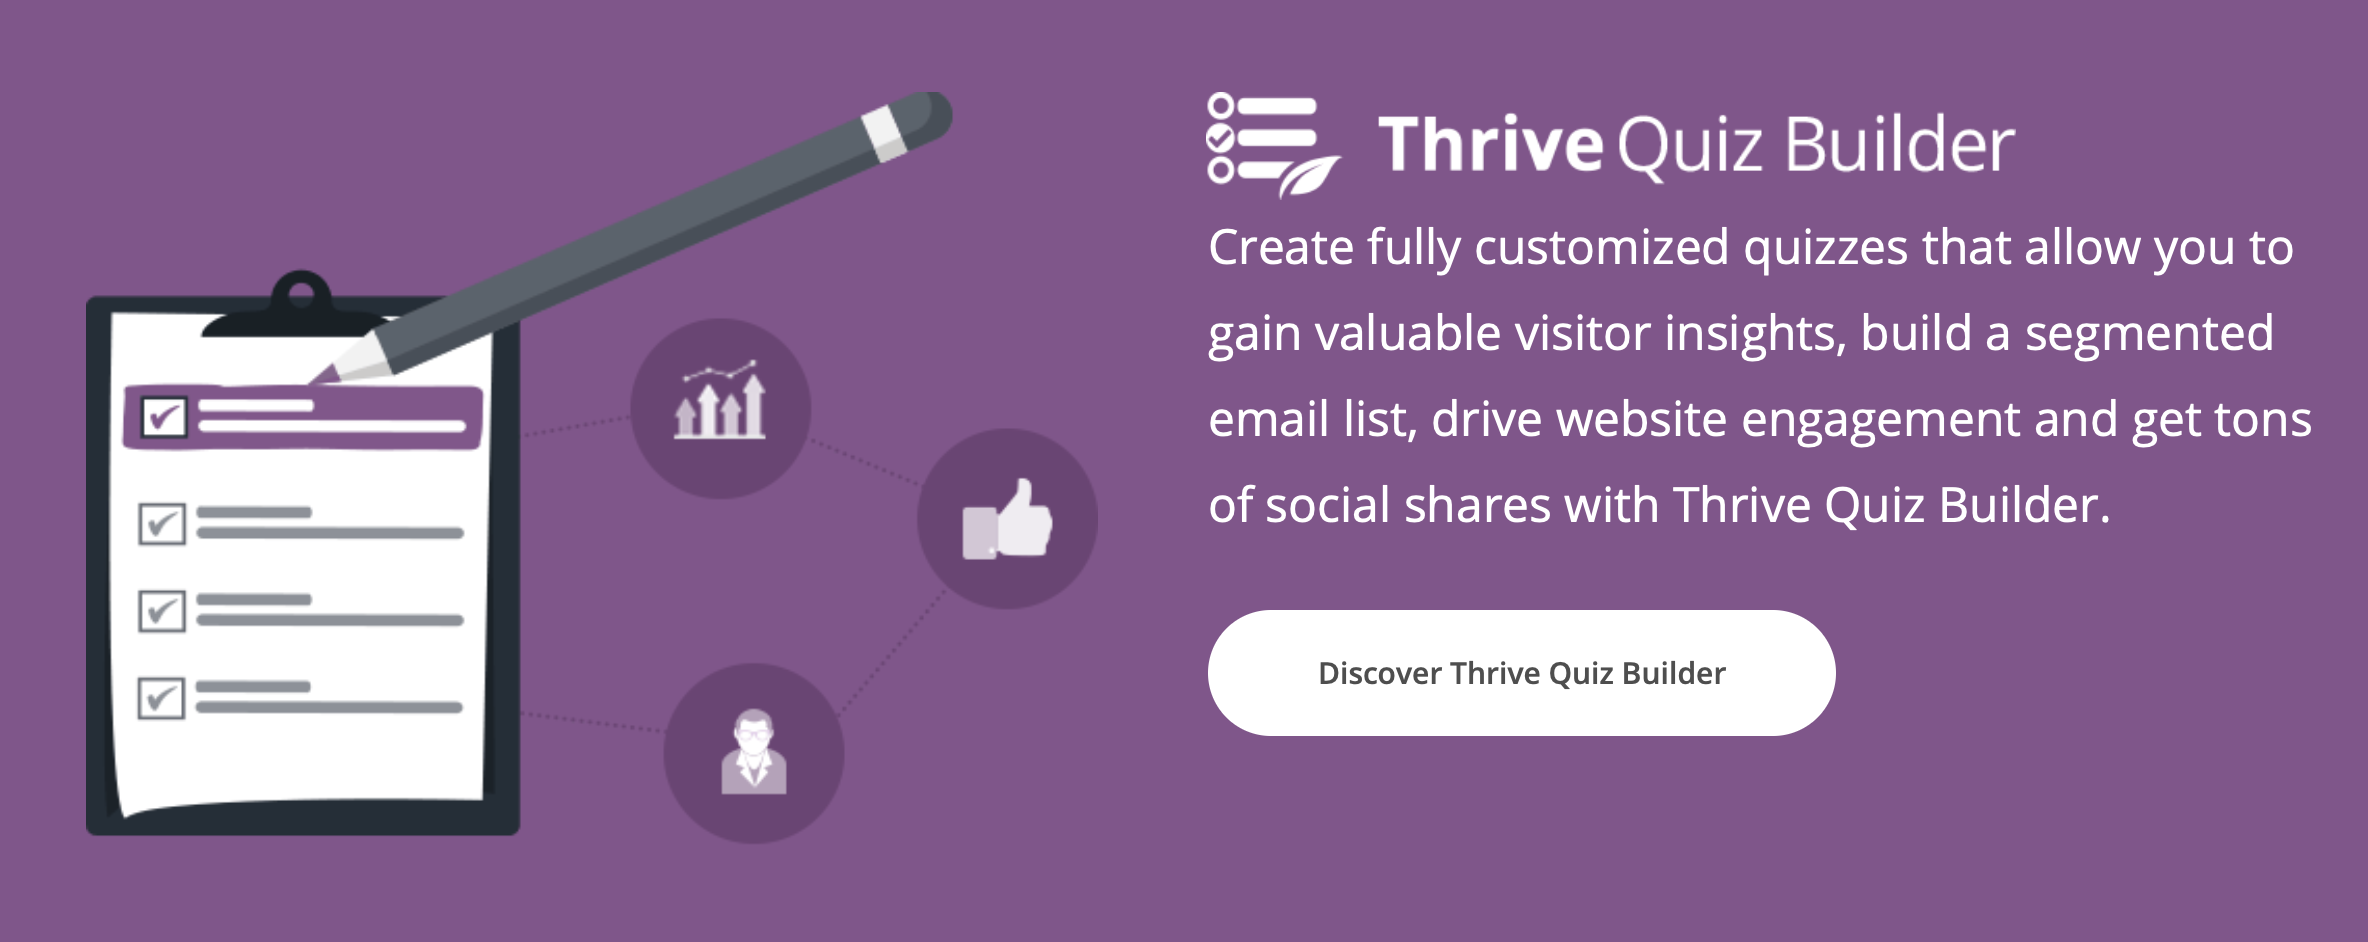 Thrive Themes Review - Thrive Quiz Builder